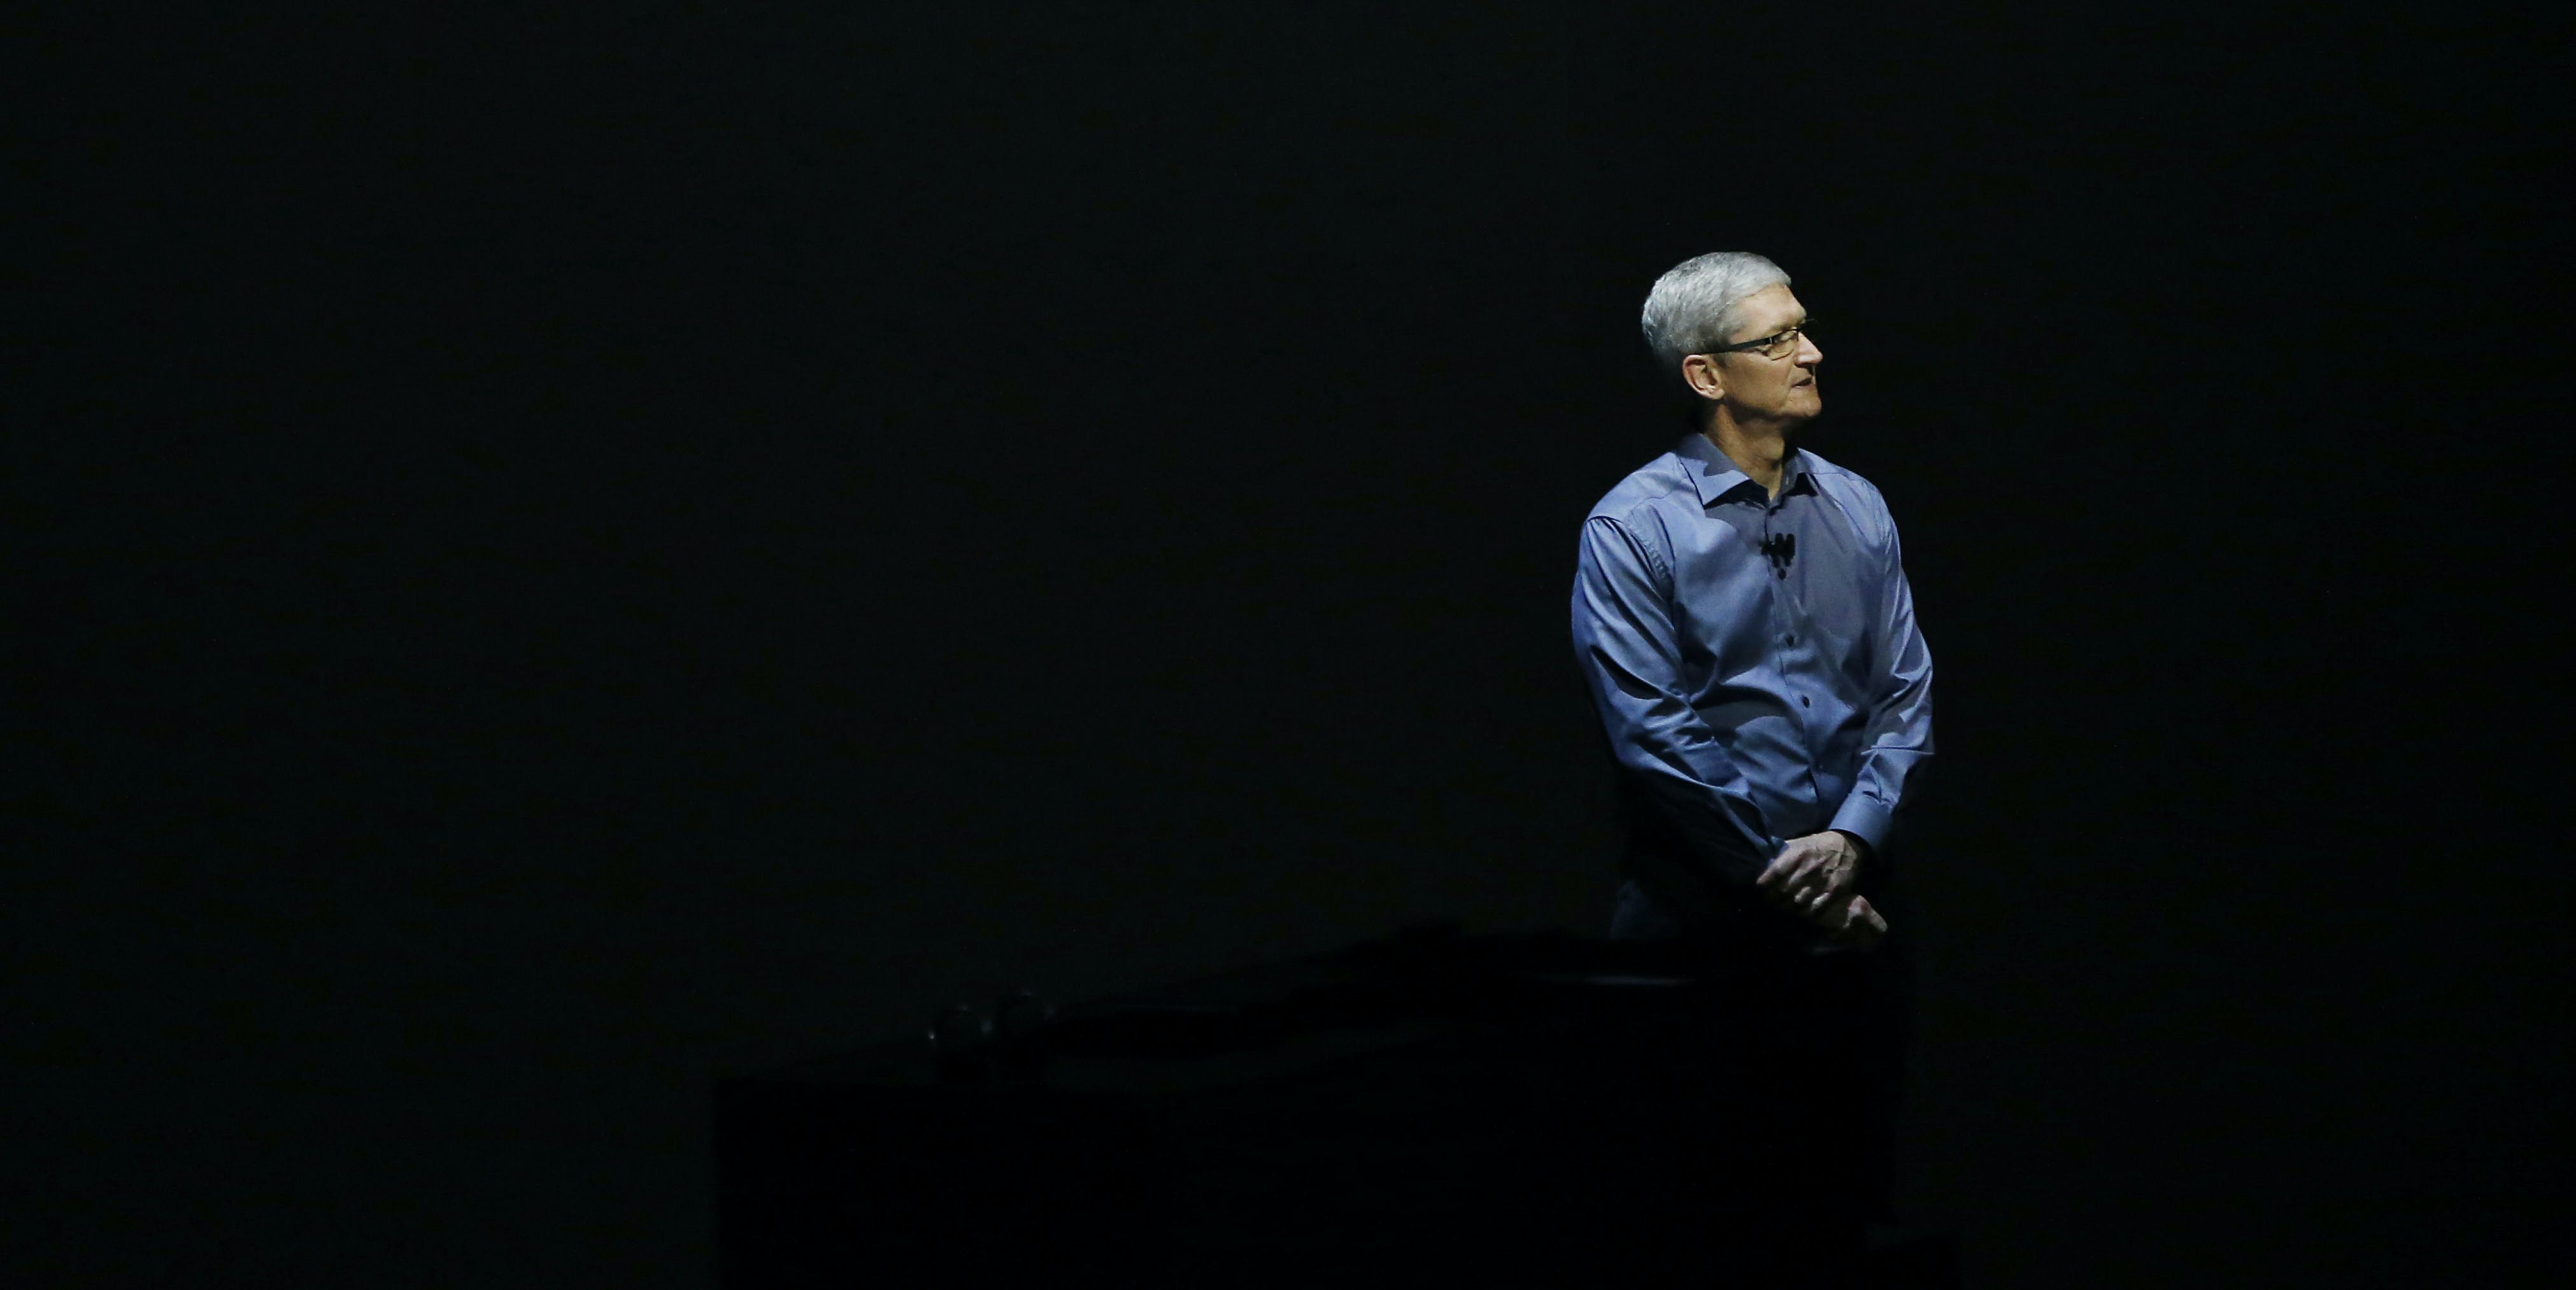 Apple CEO Tim Cook stands on stage during a Special Event at Bill Graham Civic Auditorium September 9, 2015 in San Francisco, California. Apple Inc. unveiled latest iterations of its smart phone, forecasted to be the 6S and 6S Plus and announced an update to its Apple TV set-top box.